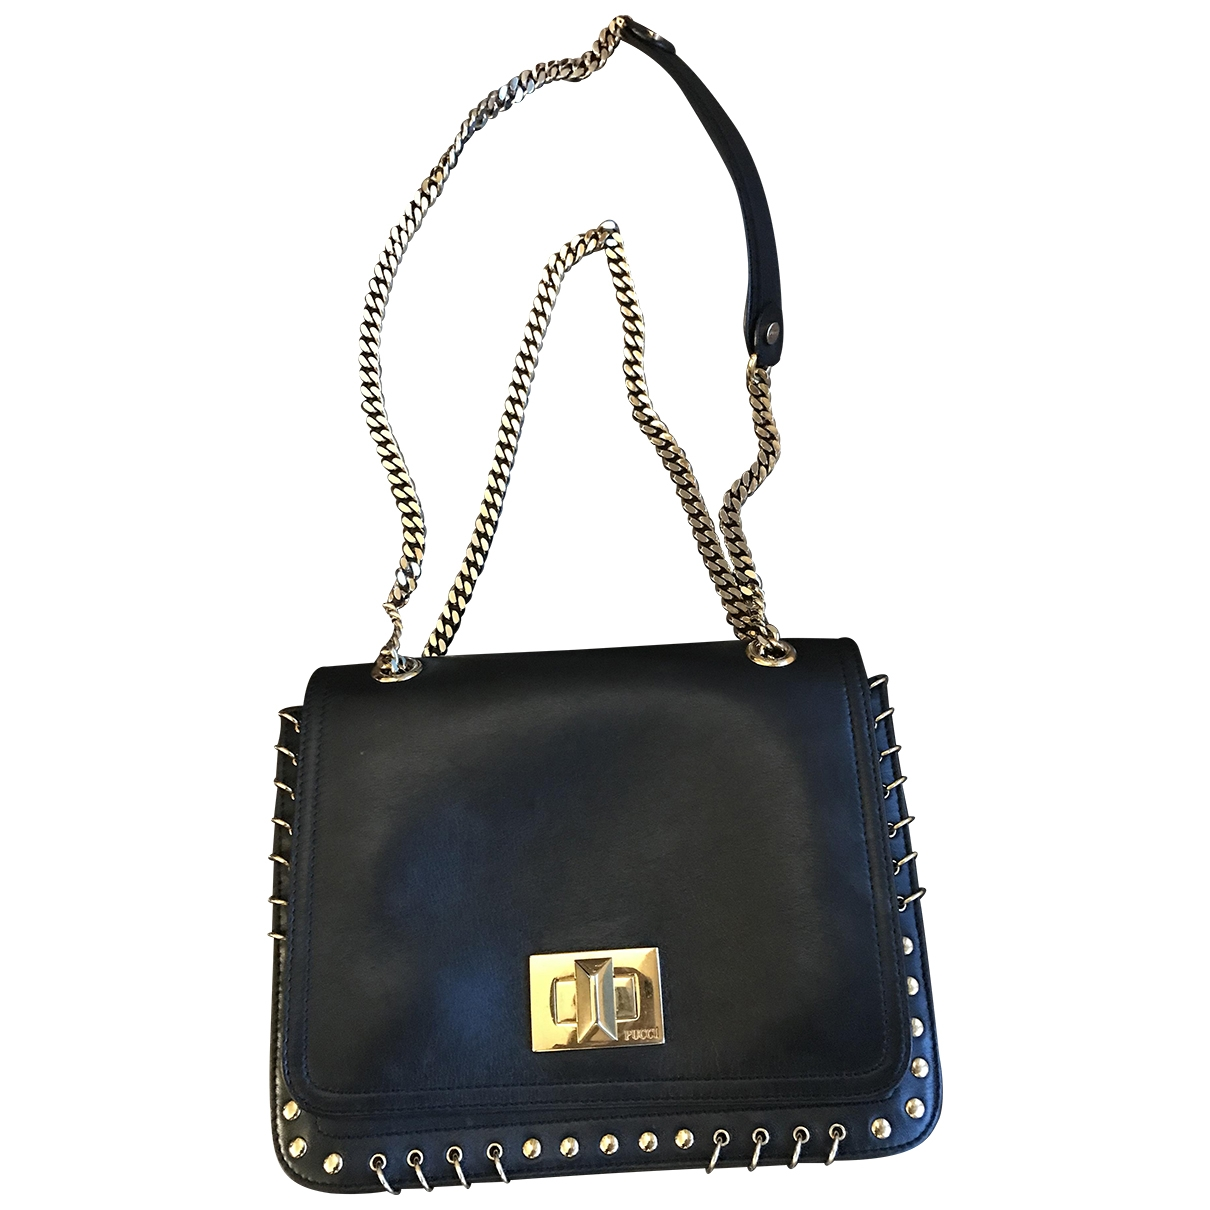 Emilio Pucci \N Black Leather handbag for Women \N